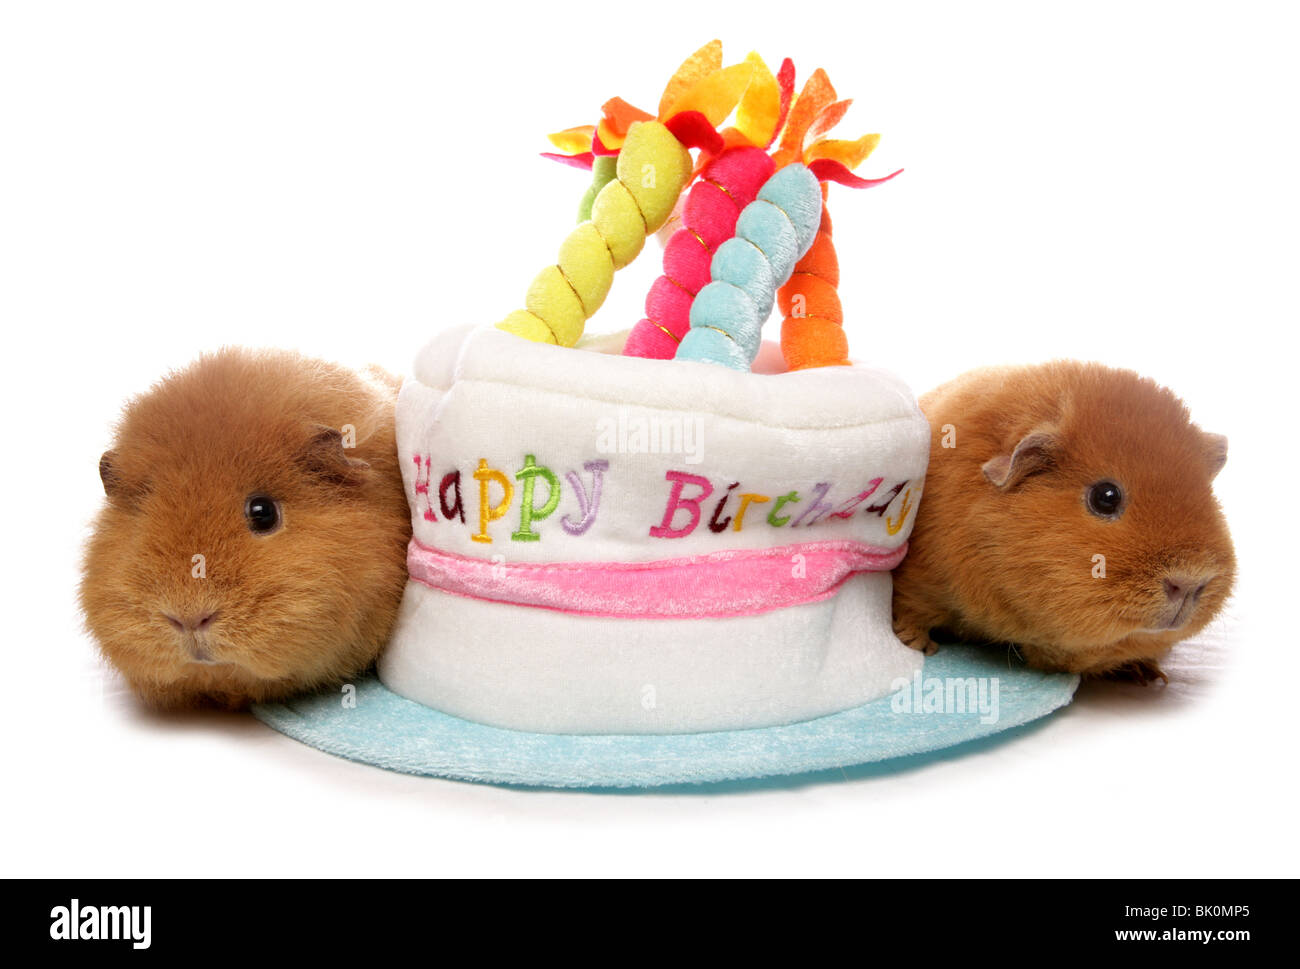 Domestic Guinea Pig Cavia Porcellus Portrait Of Two Adults Resting Next To Birthday Hat Cake Studio UK